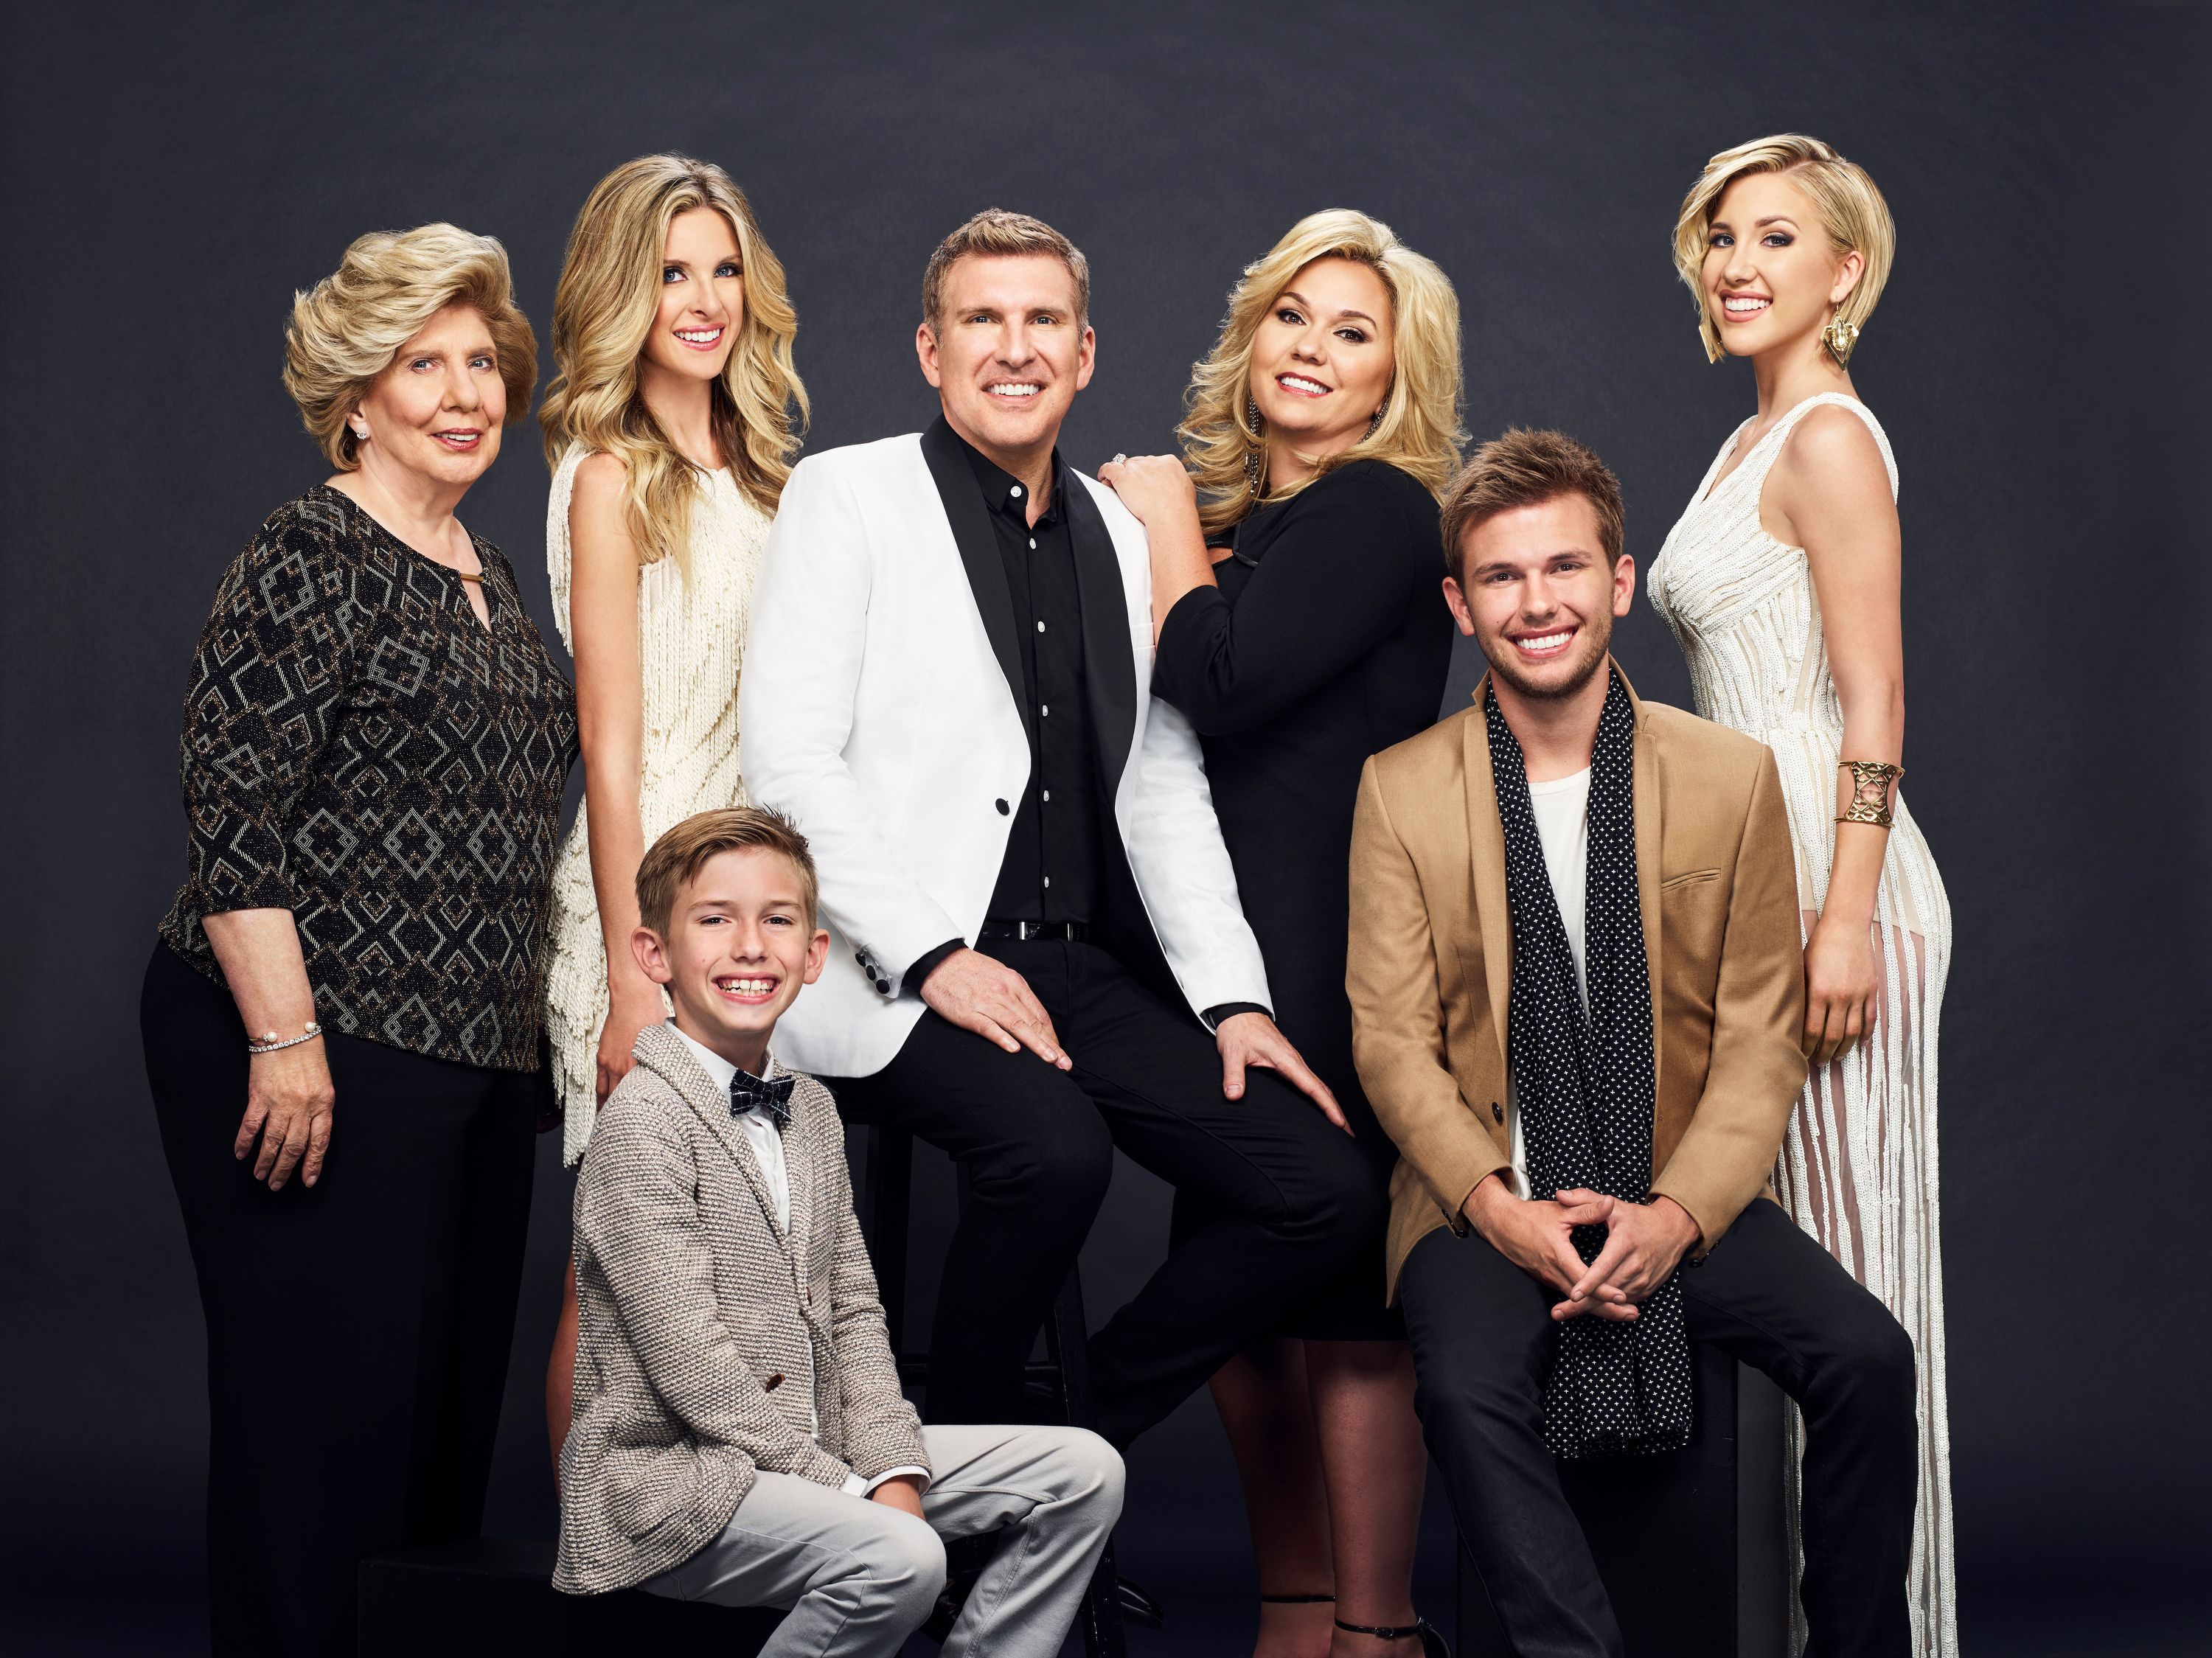 Faye Chrisley, Lindsie Chrisley Campbell, Grayson Chrisley, Todd Chrisley, Julie Chrisley, Chase Chrisley, Savannah Chrisley smile for a Season 4 family portrait. | Photo: Getty Images